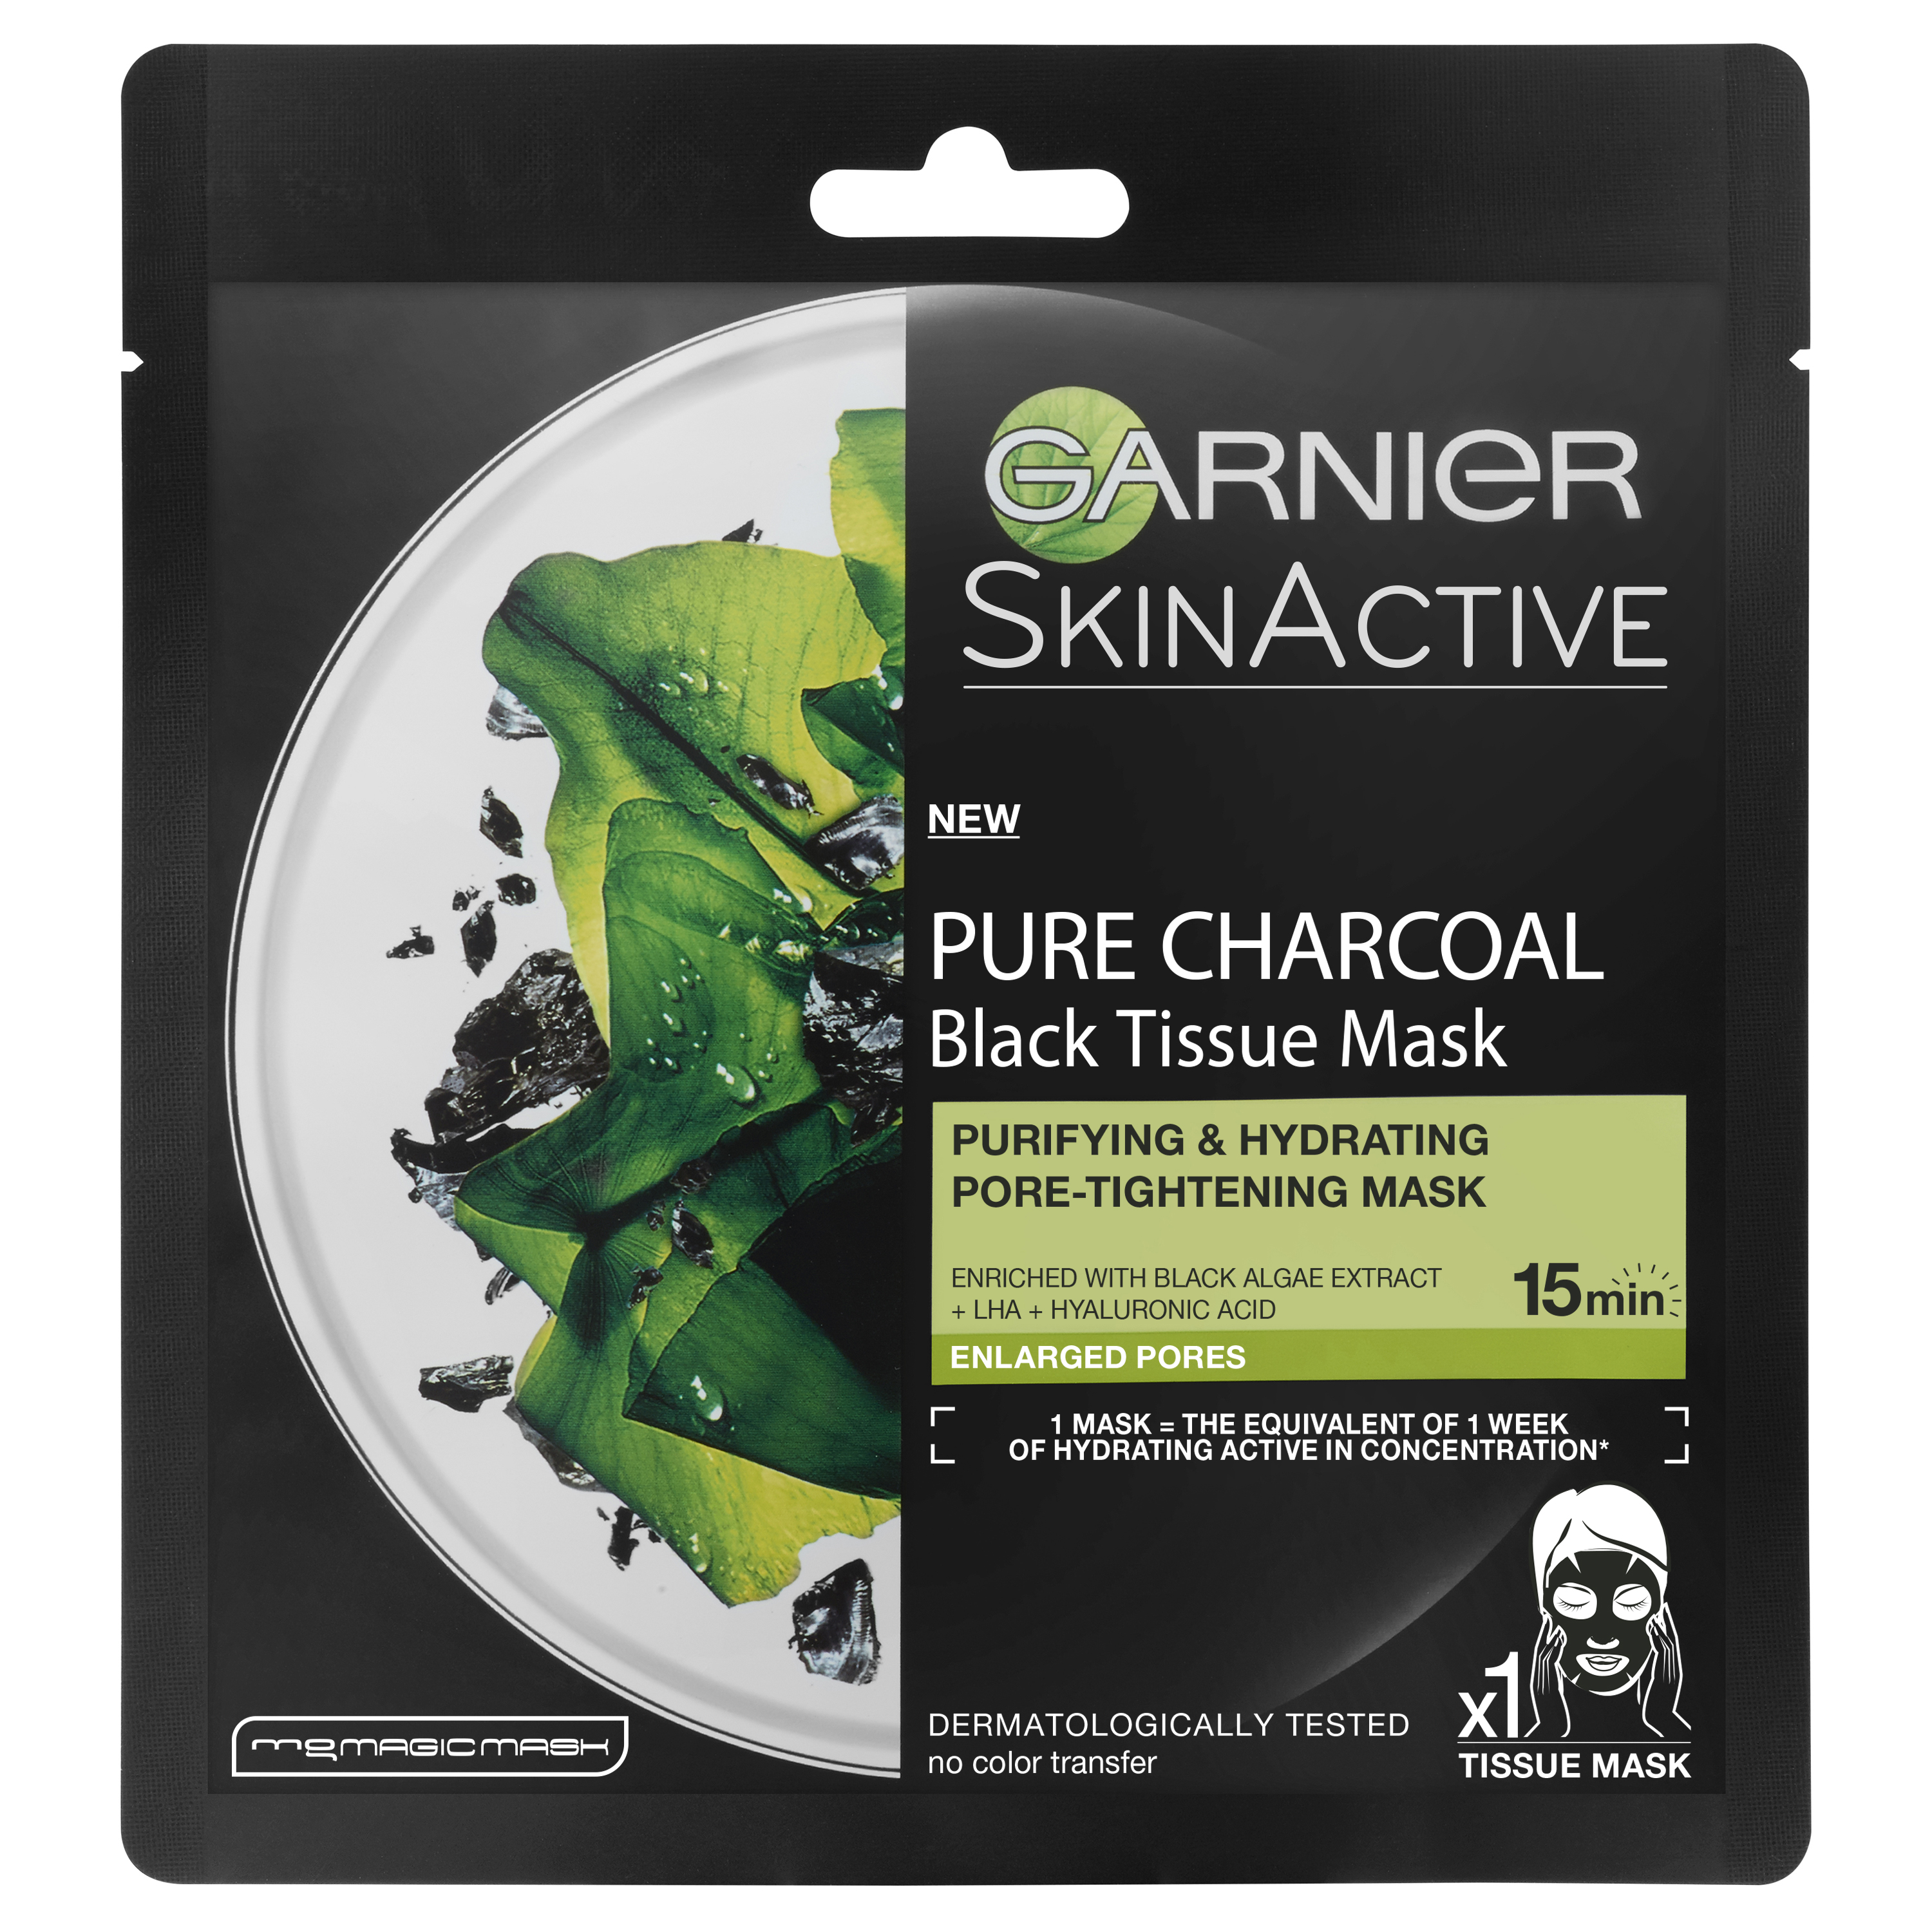 SkinActive Pure Charcoal Black Tissue Mask